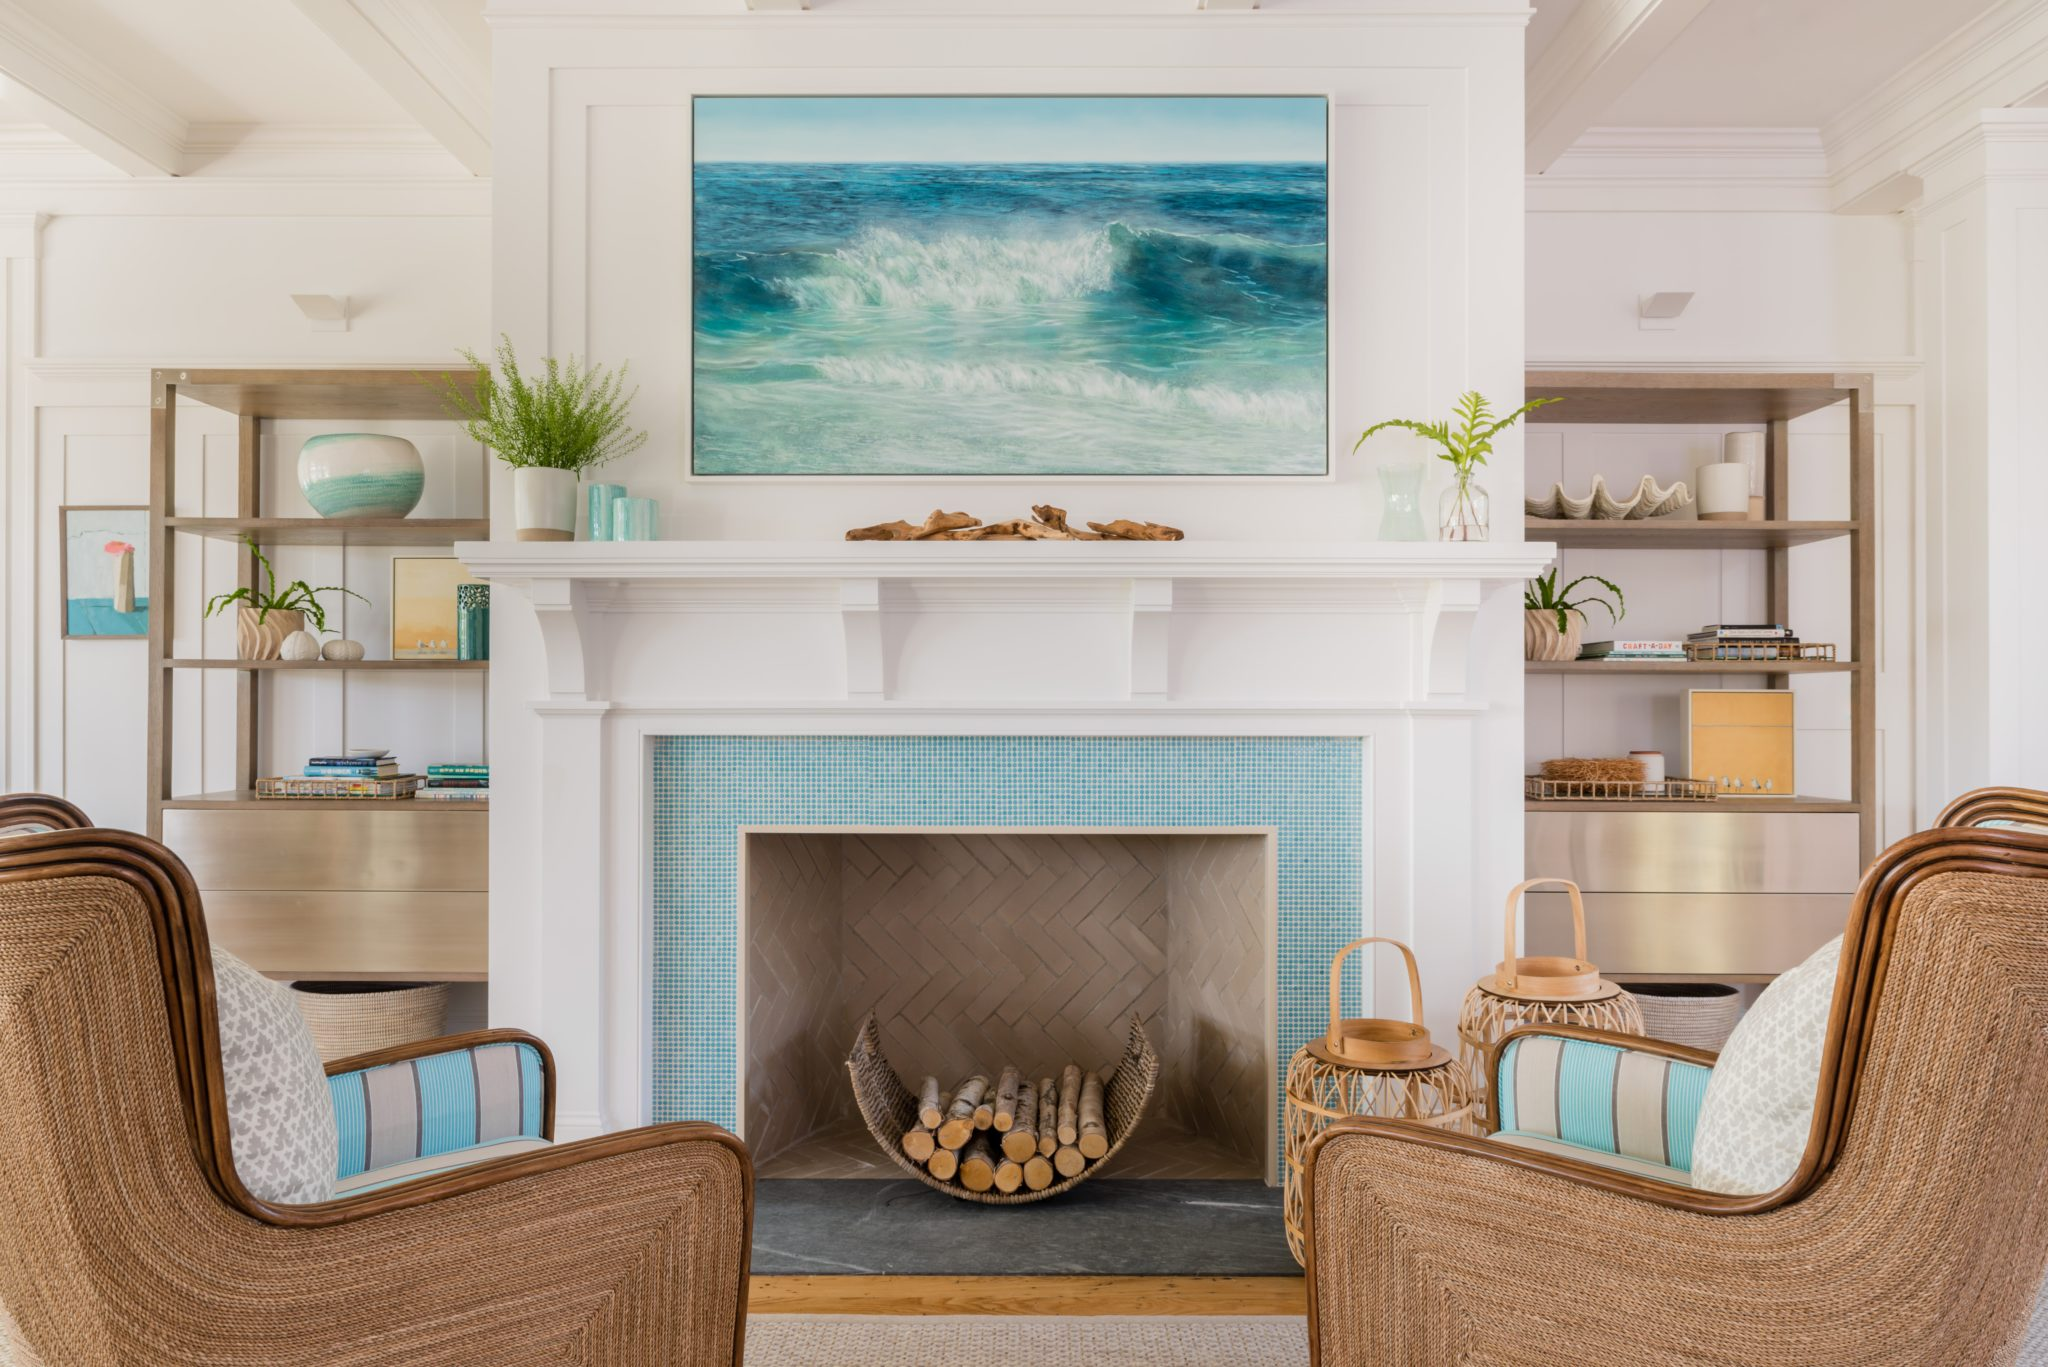 Osterville Coastal House - Fireplace Area with Soft Seating by Justine Sterling Design